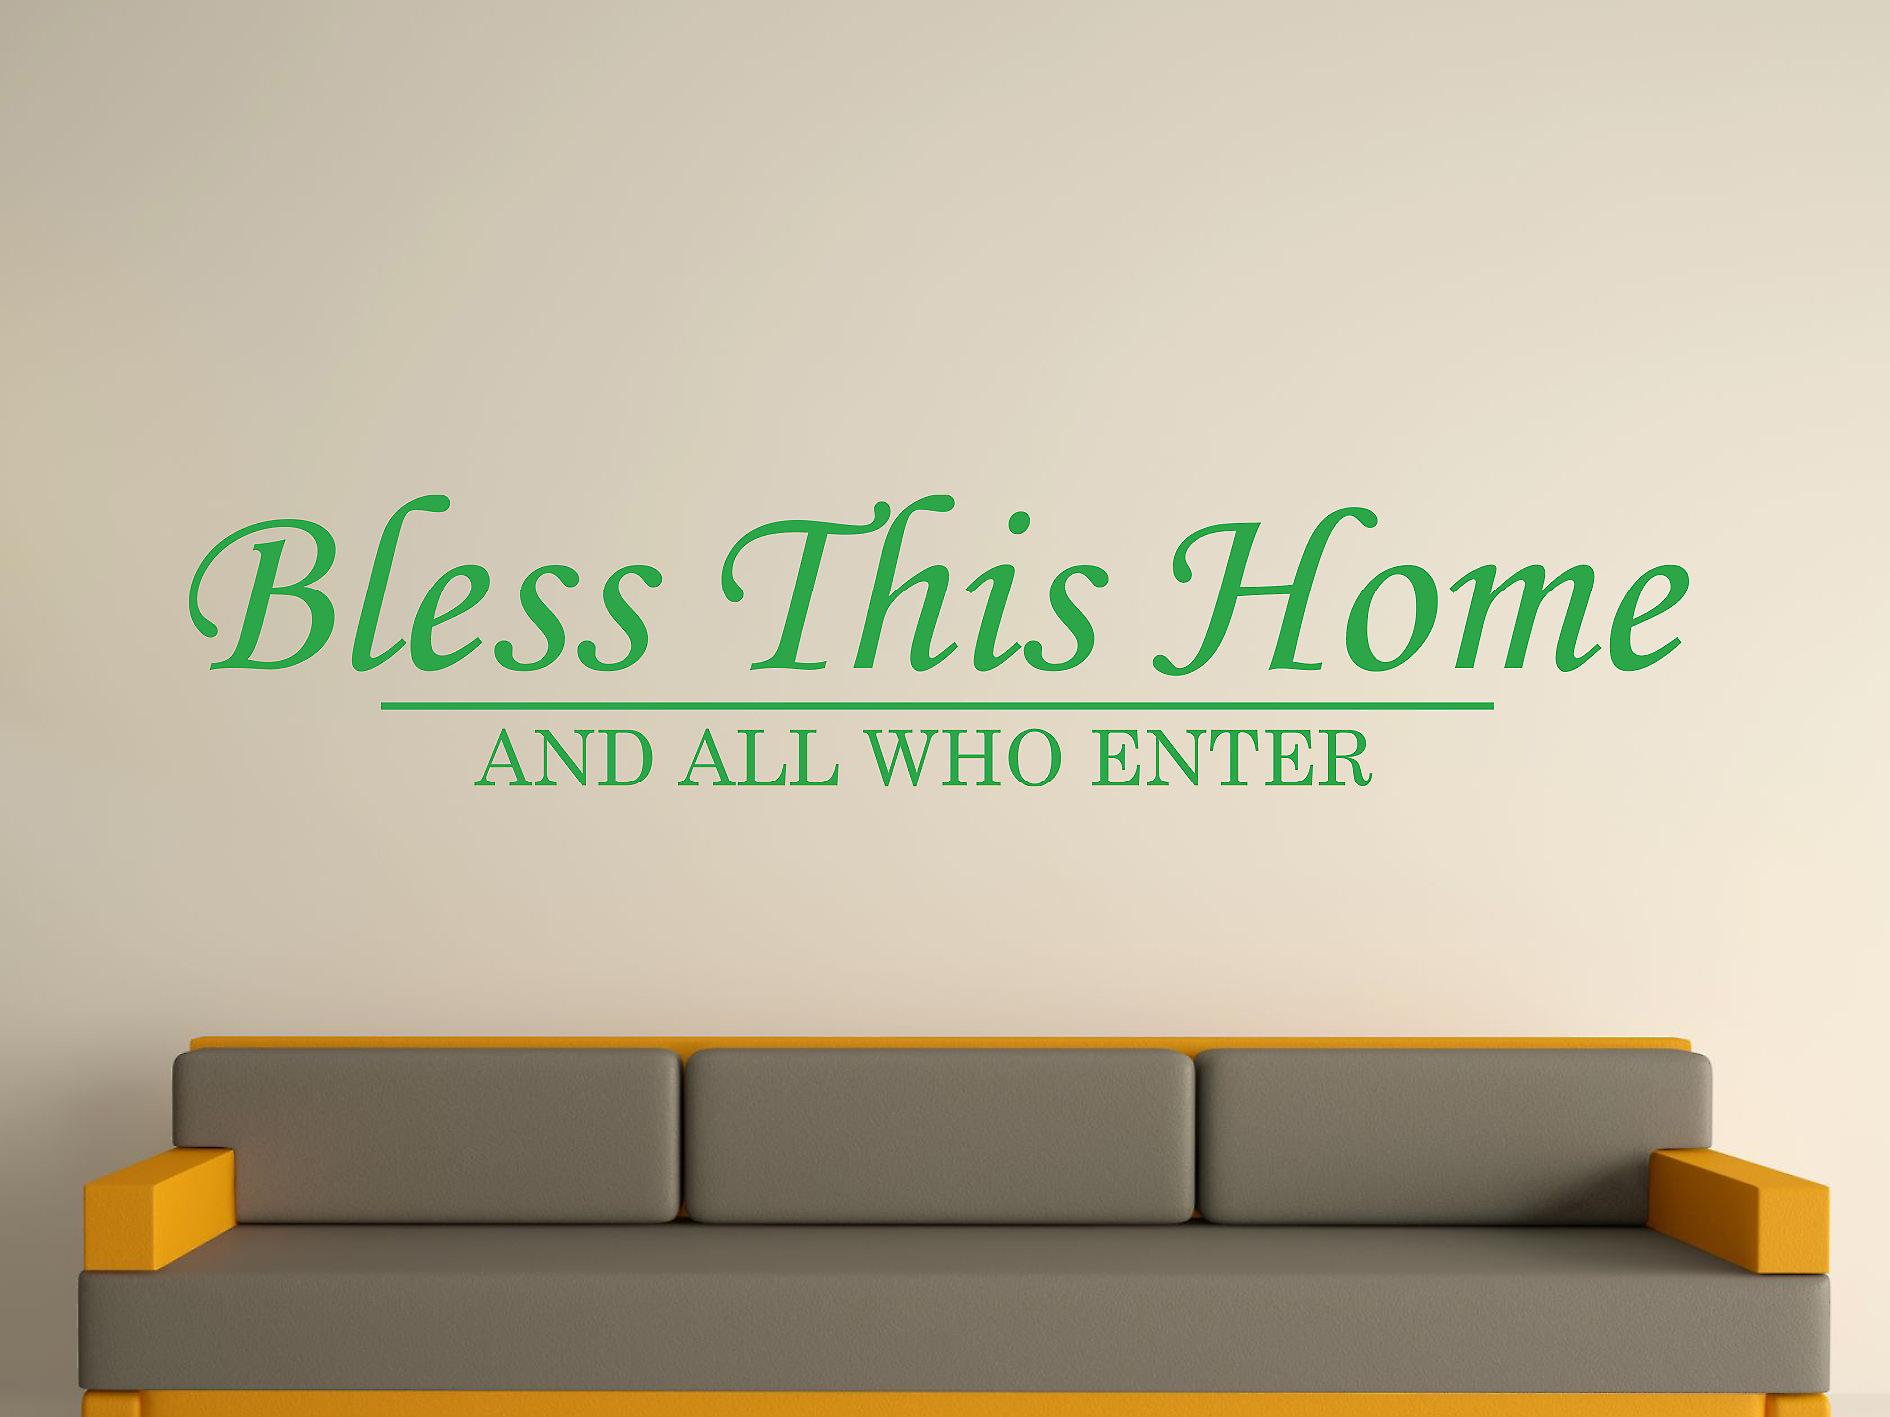 Bless This Home Wall Art Sticker -  Green